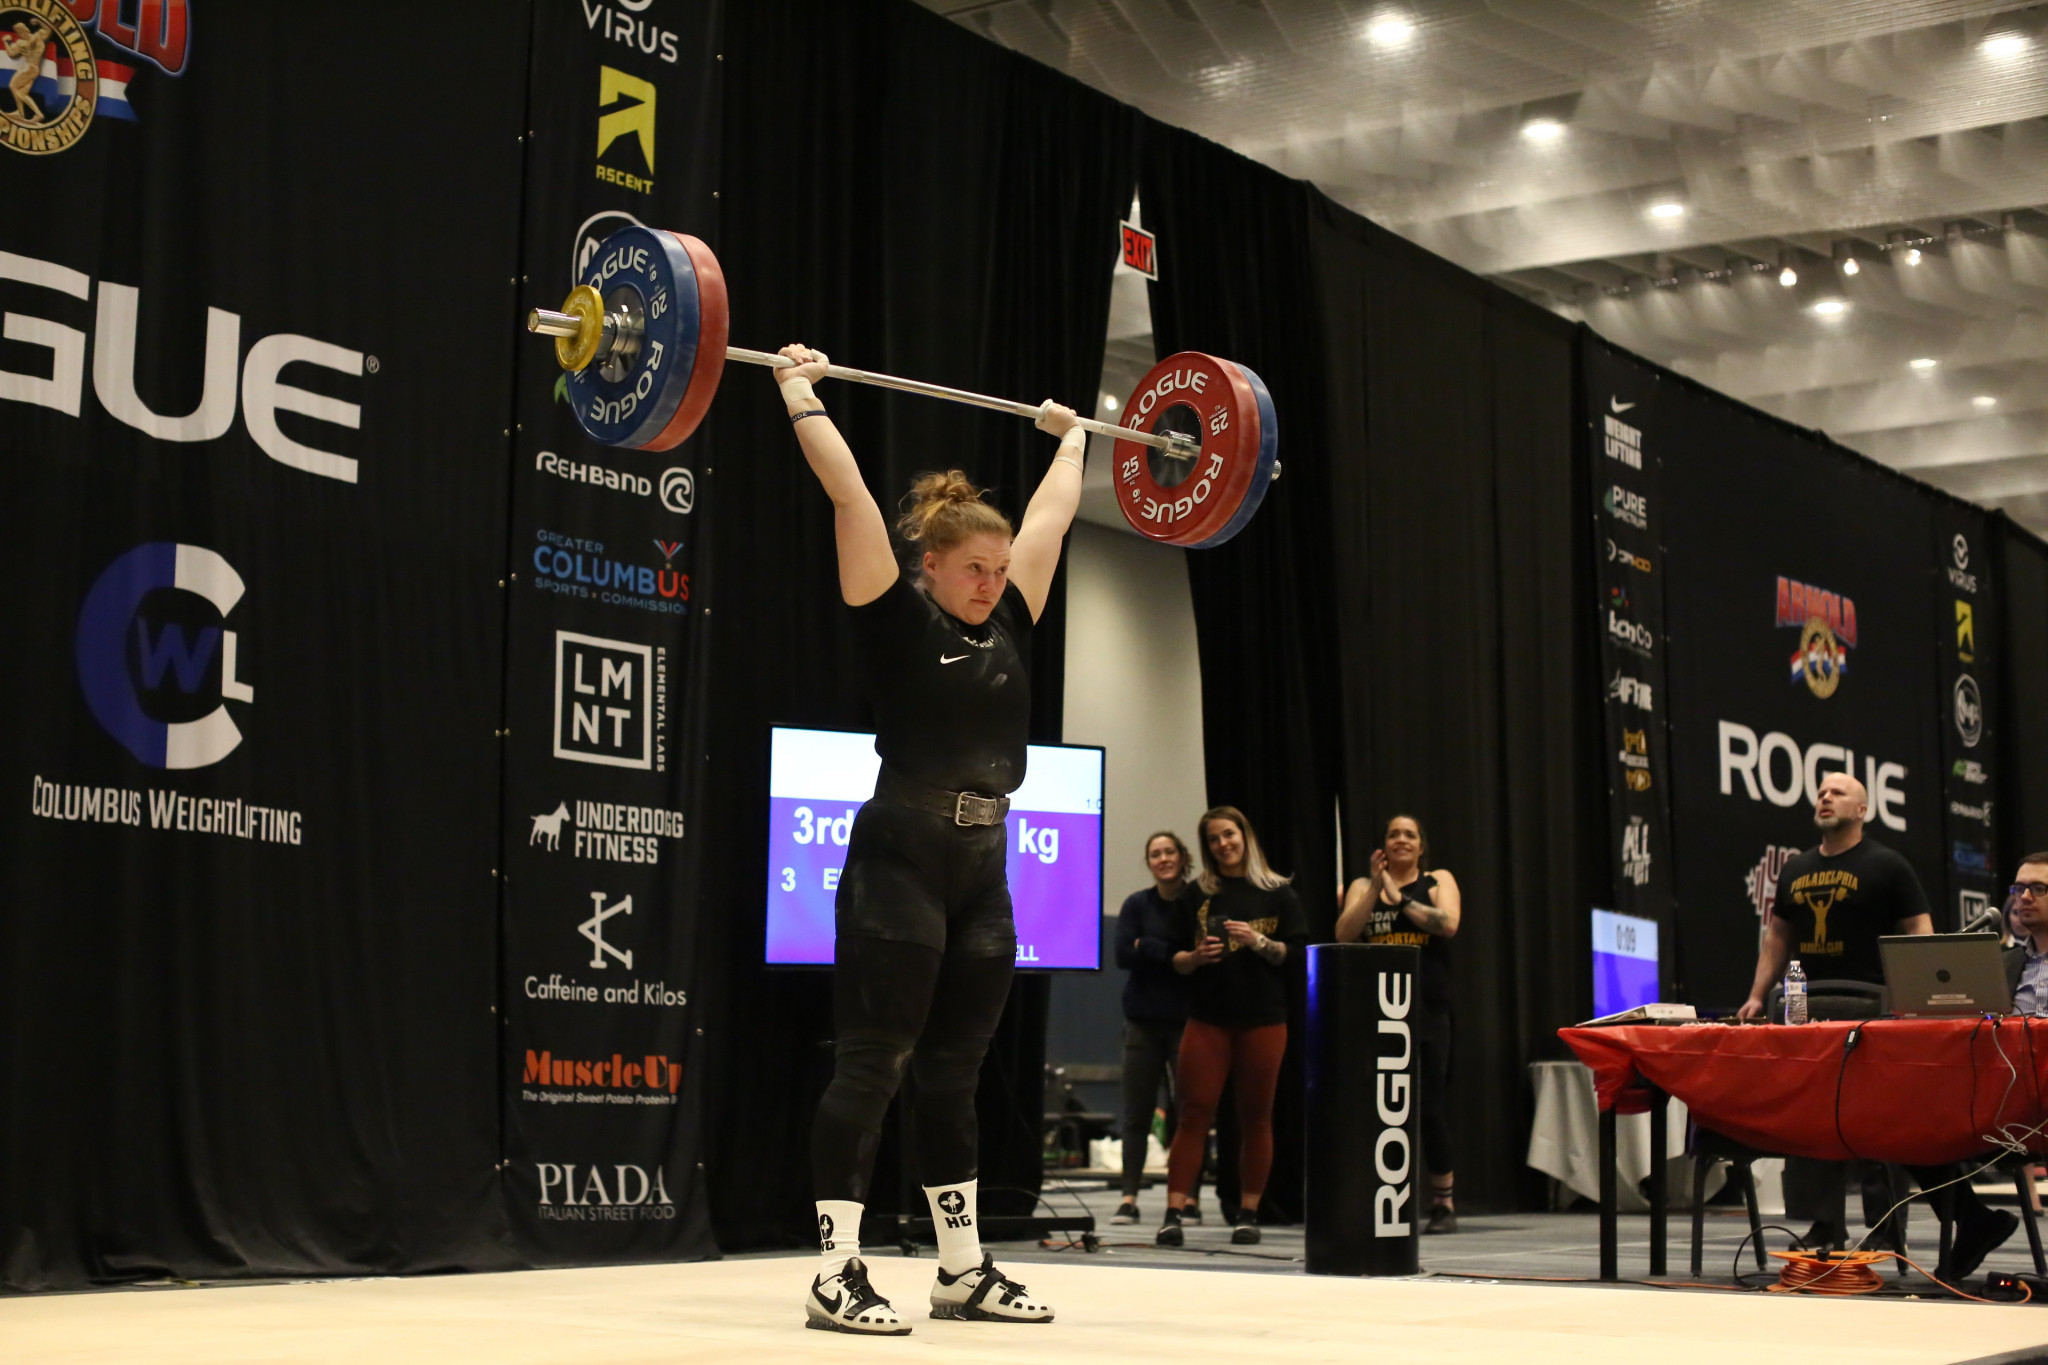 Former shot-putter Kristen Erickson in action at the North American Open ©USA Weightlifting